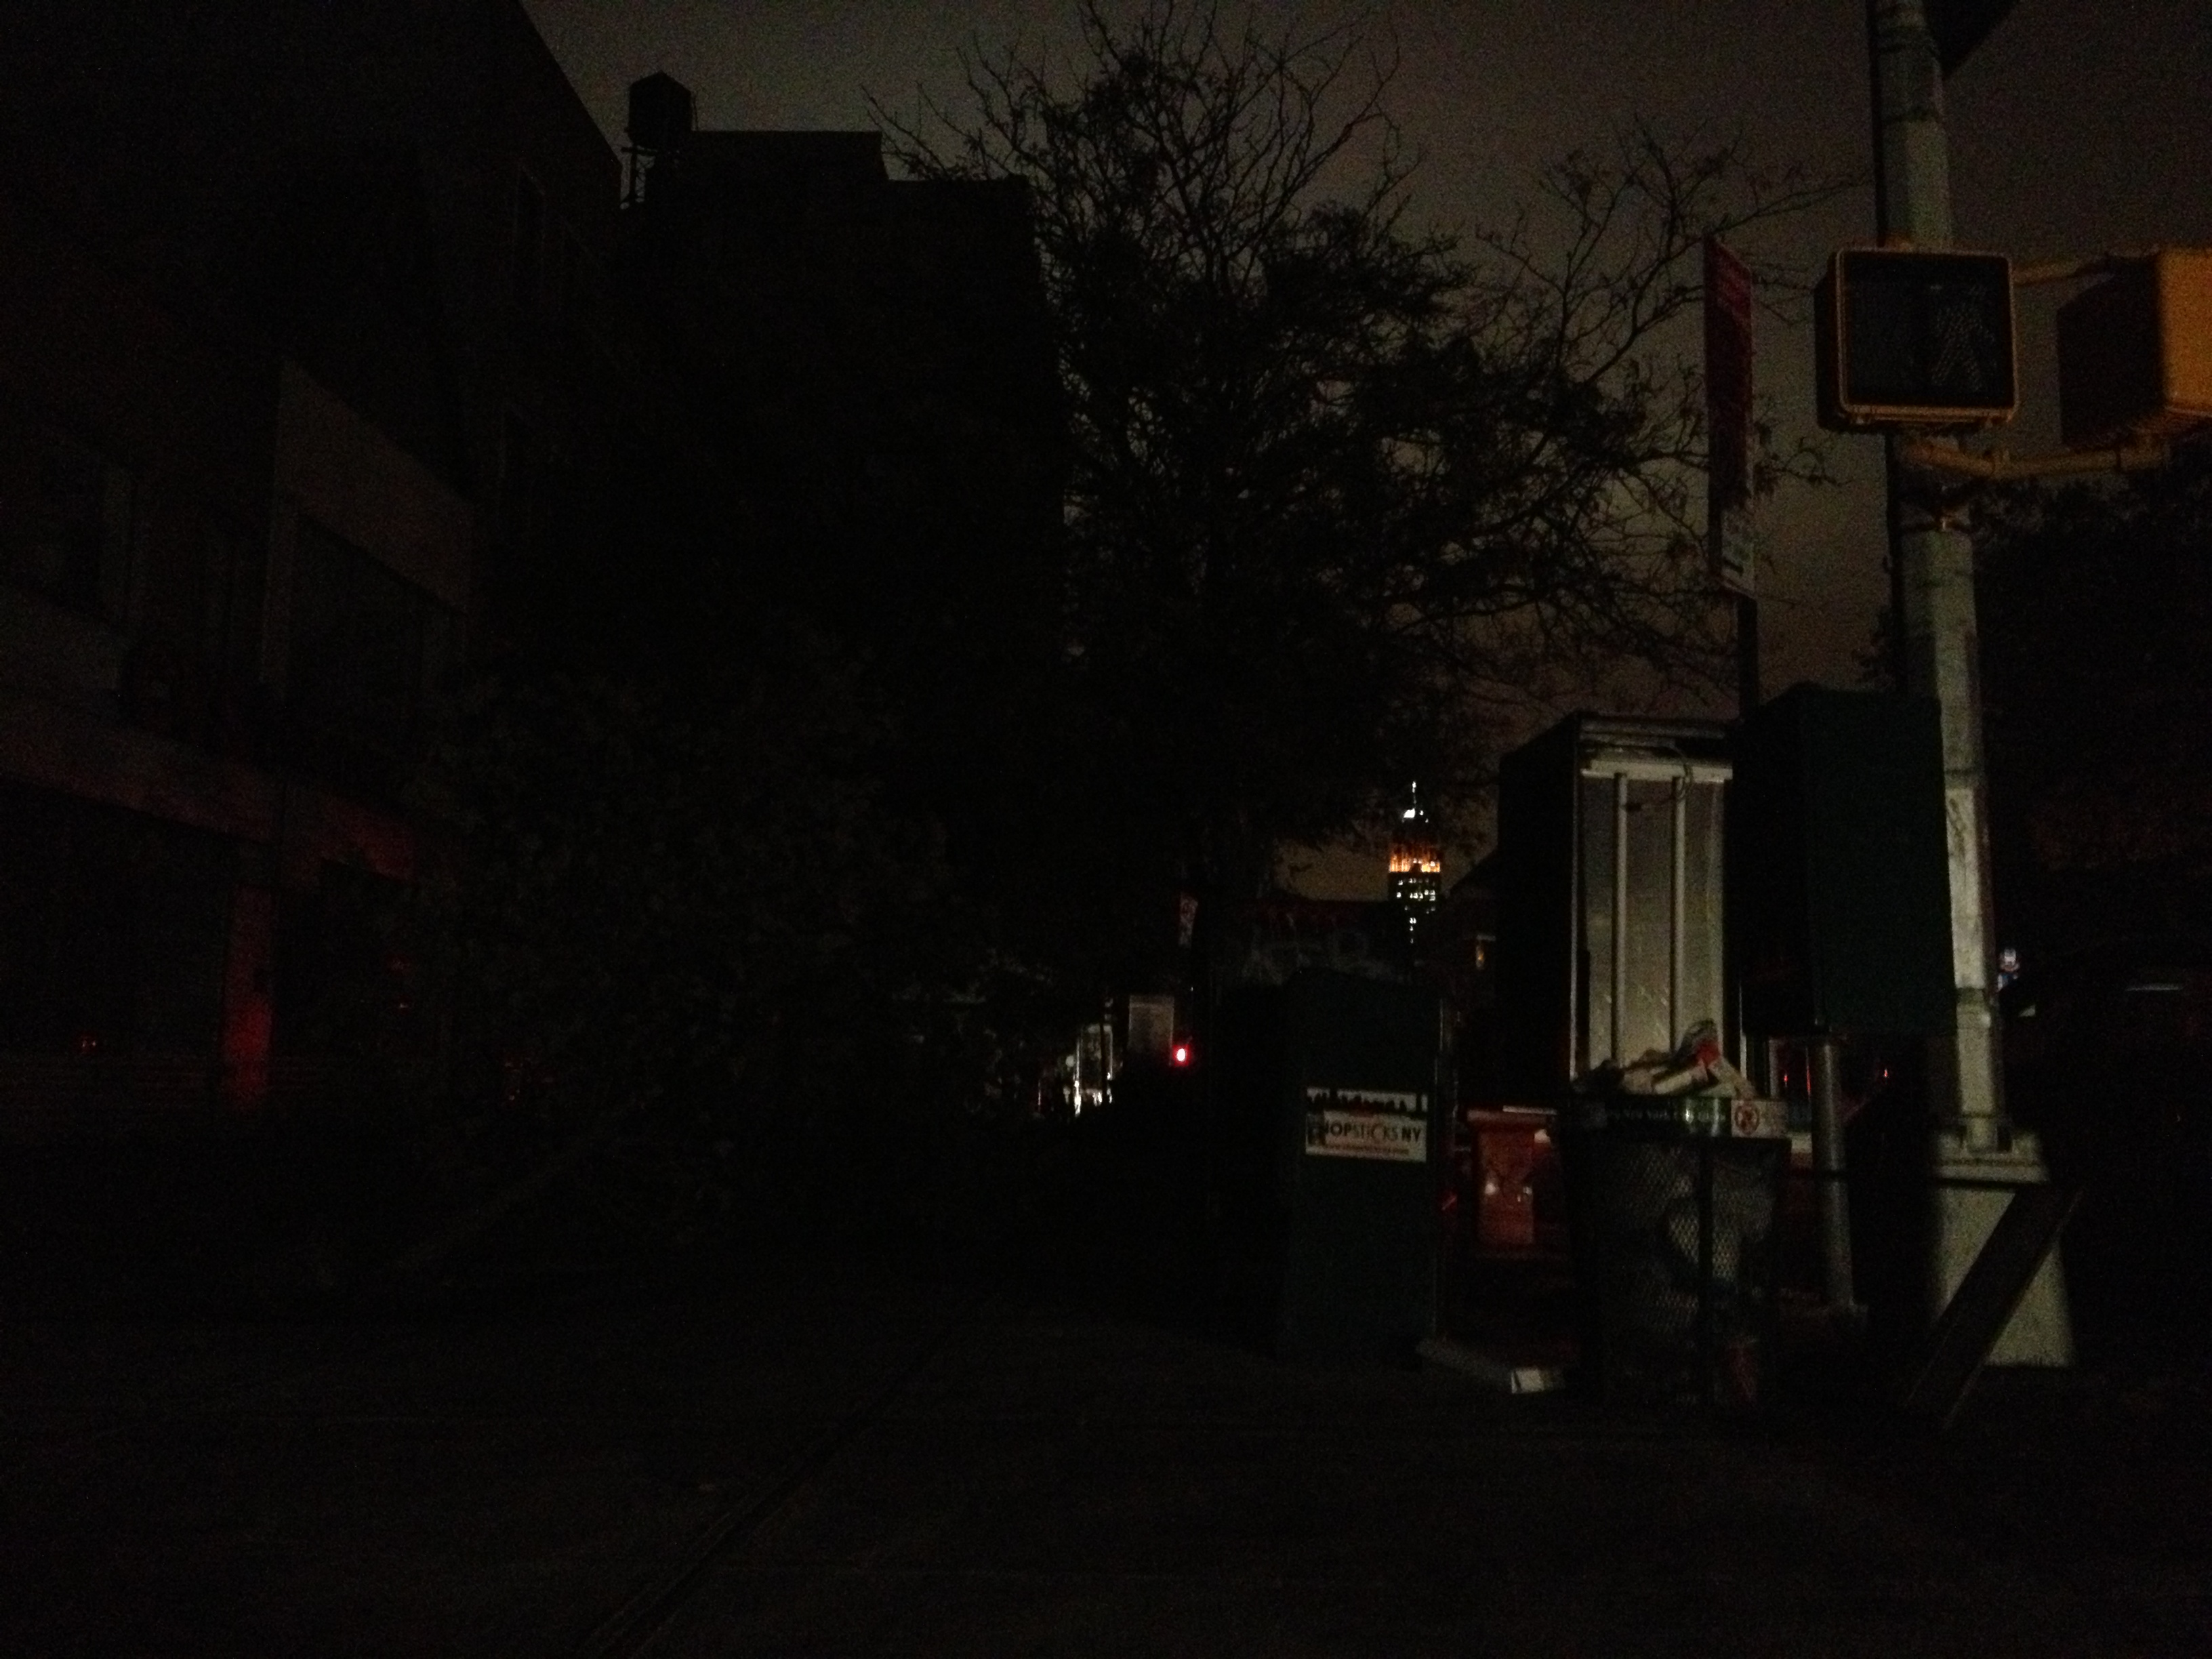 My street corner was dark, but the Empire State Building remained a beacon